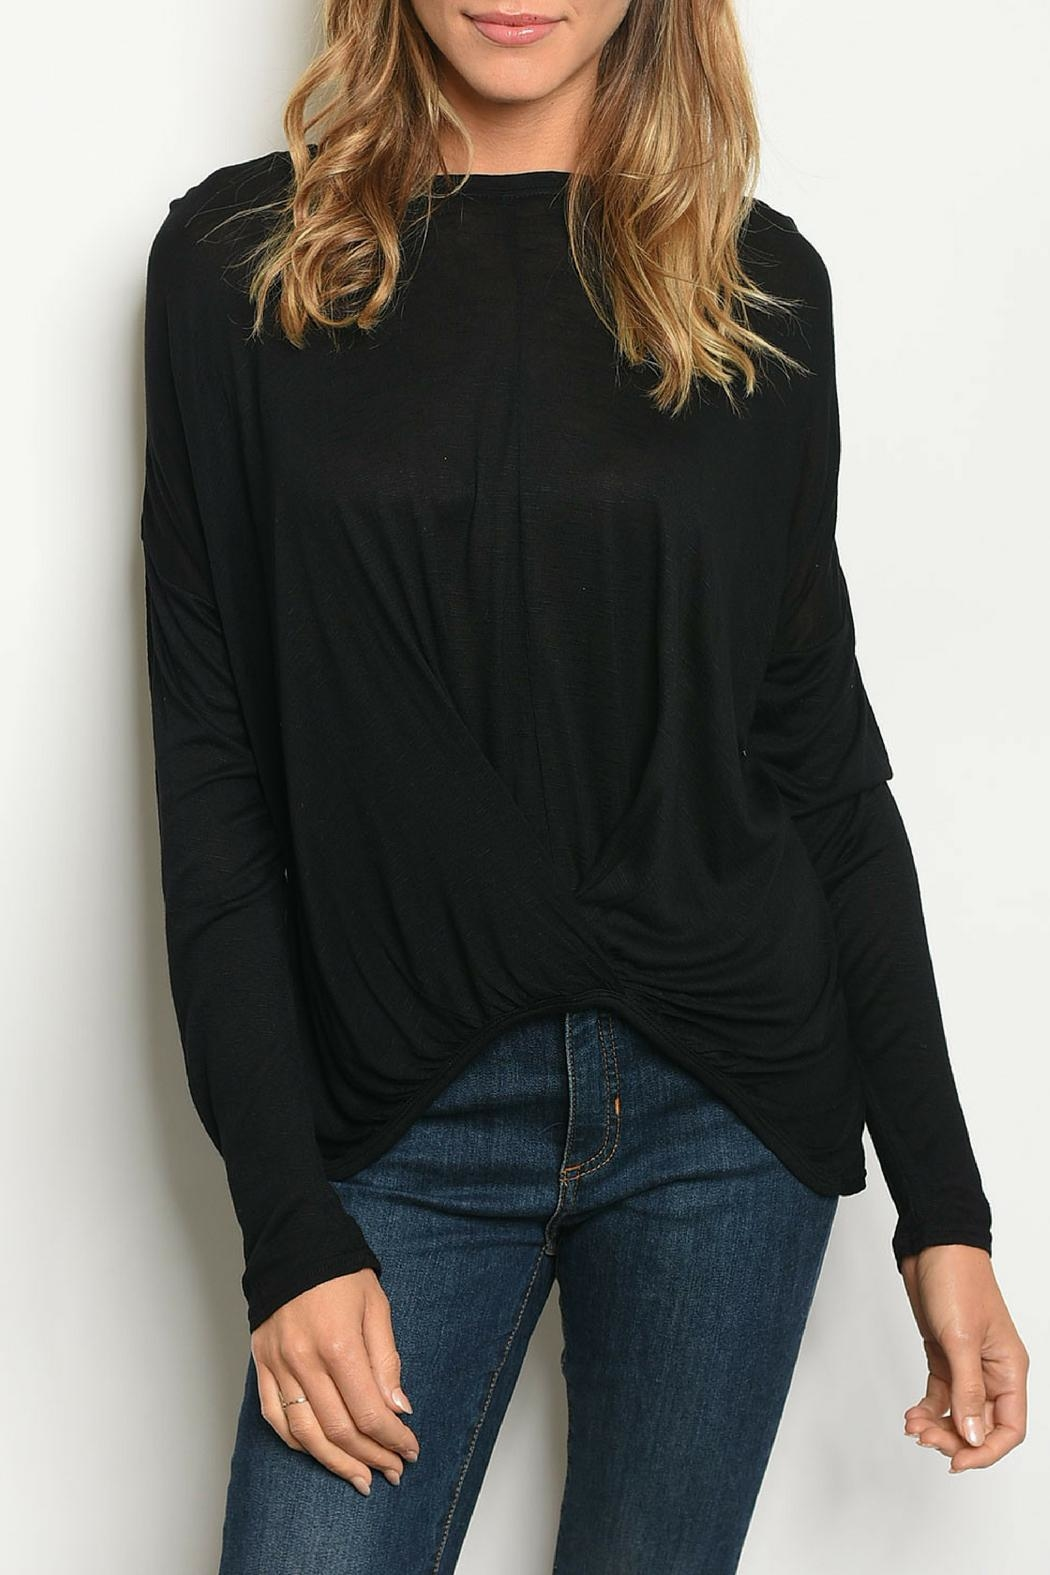 LoveRiche Black Knotted Top - Main Image